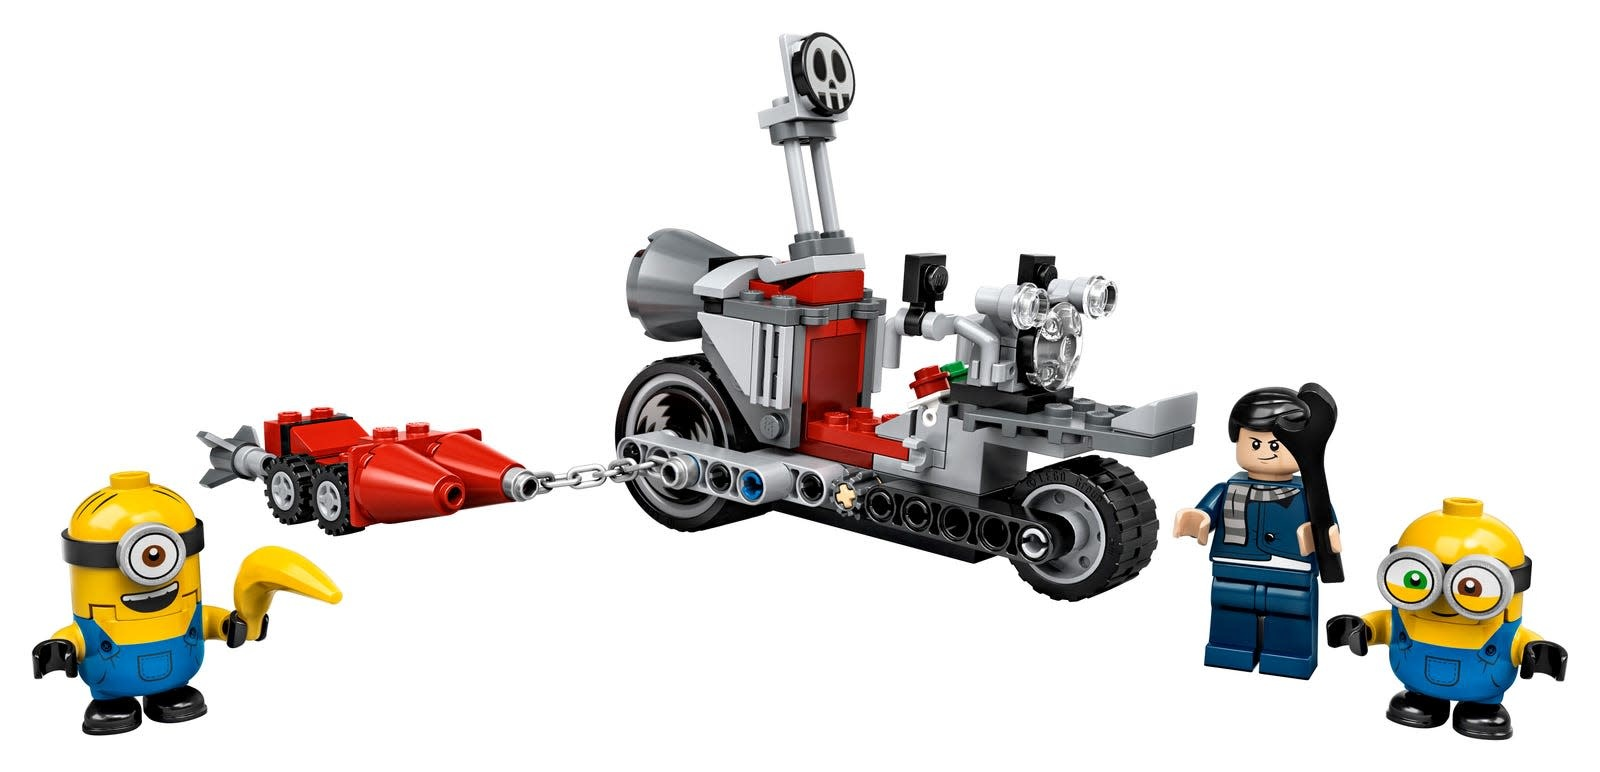 75549 Unstoppable Bike Chase by LEGO Minions